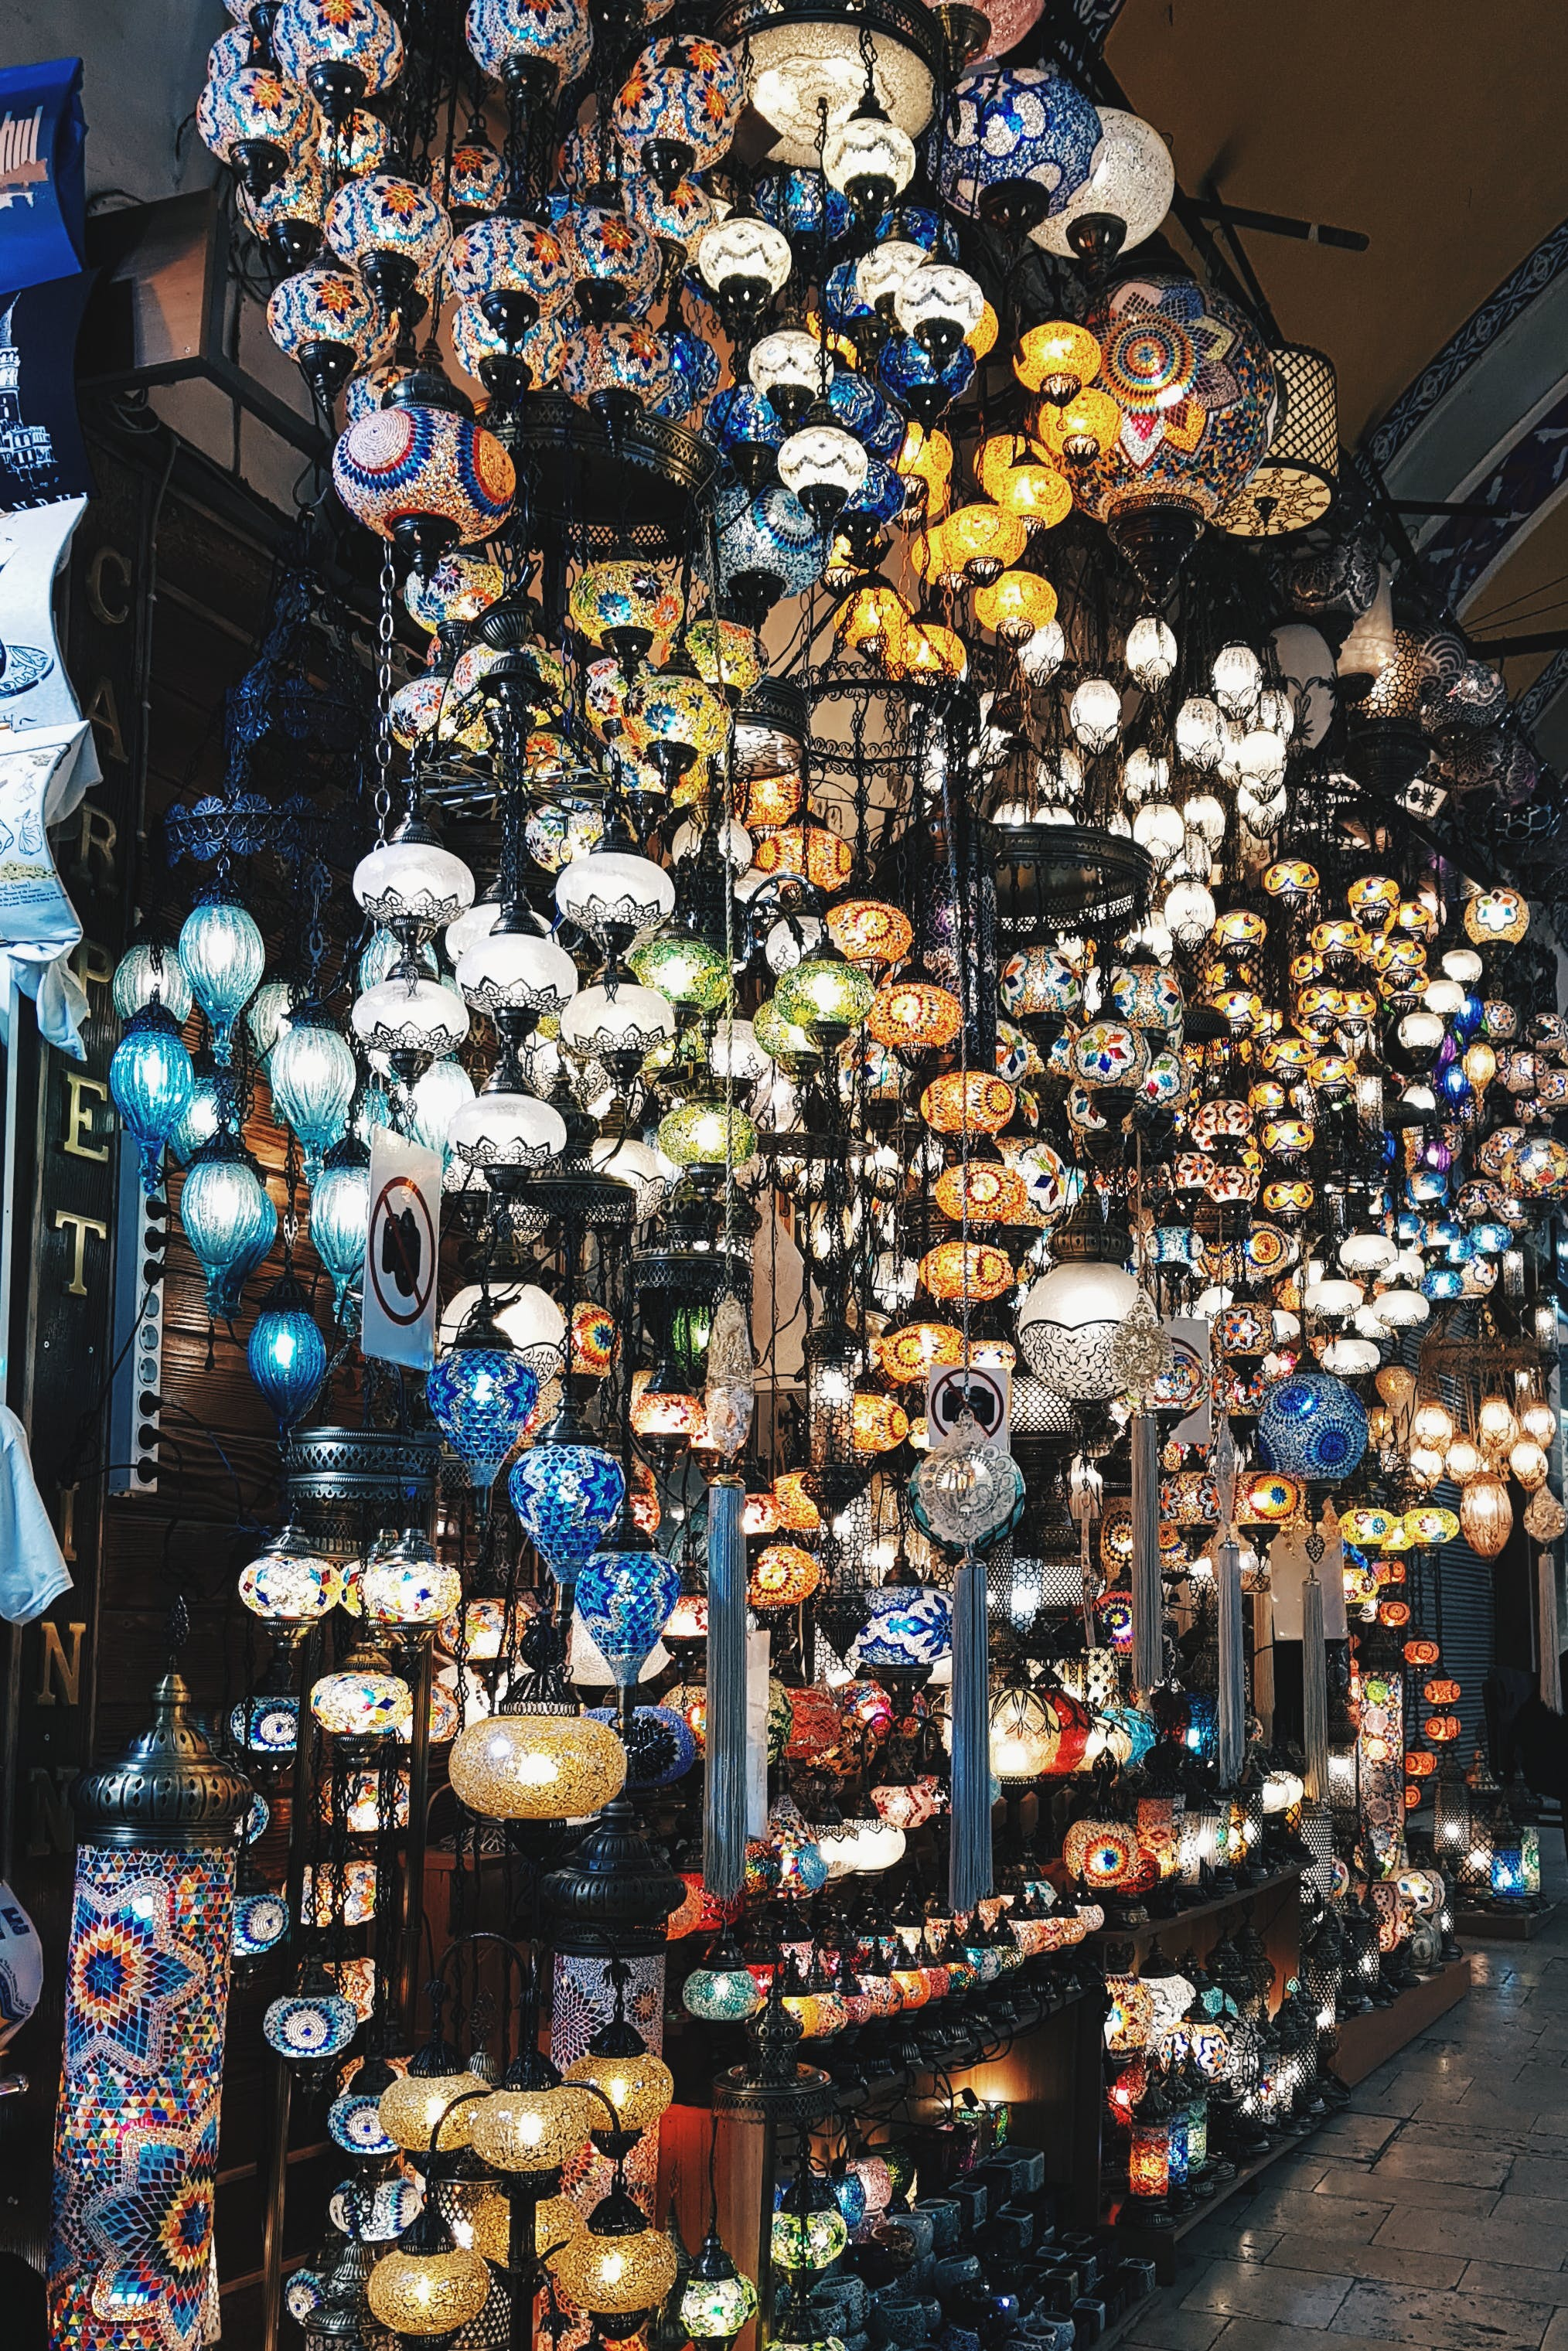 Free stock photo of bazaar, candle holder, Candlelights, Istanbul